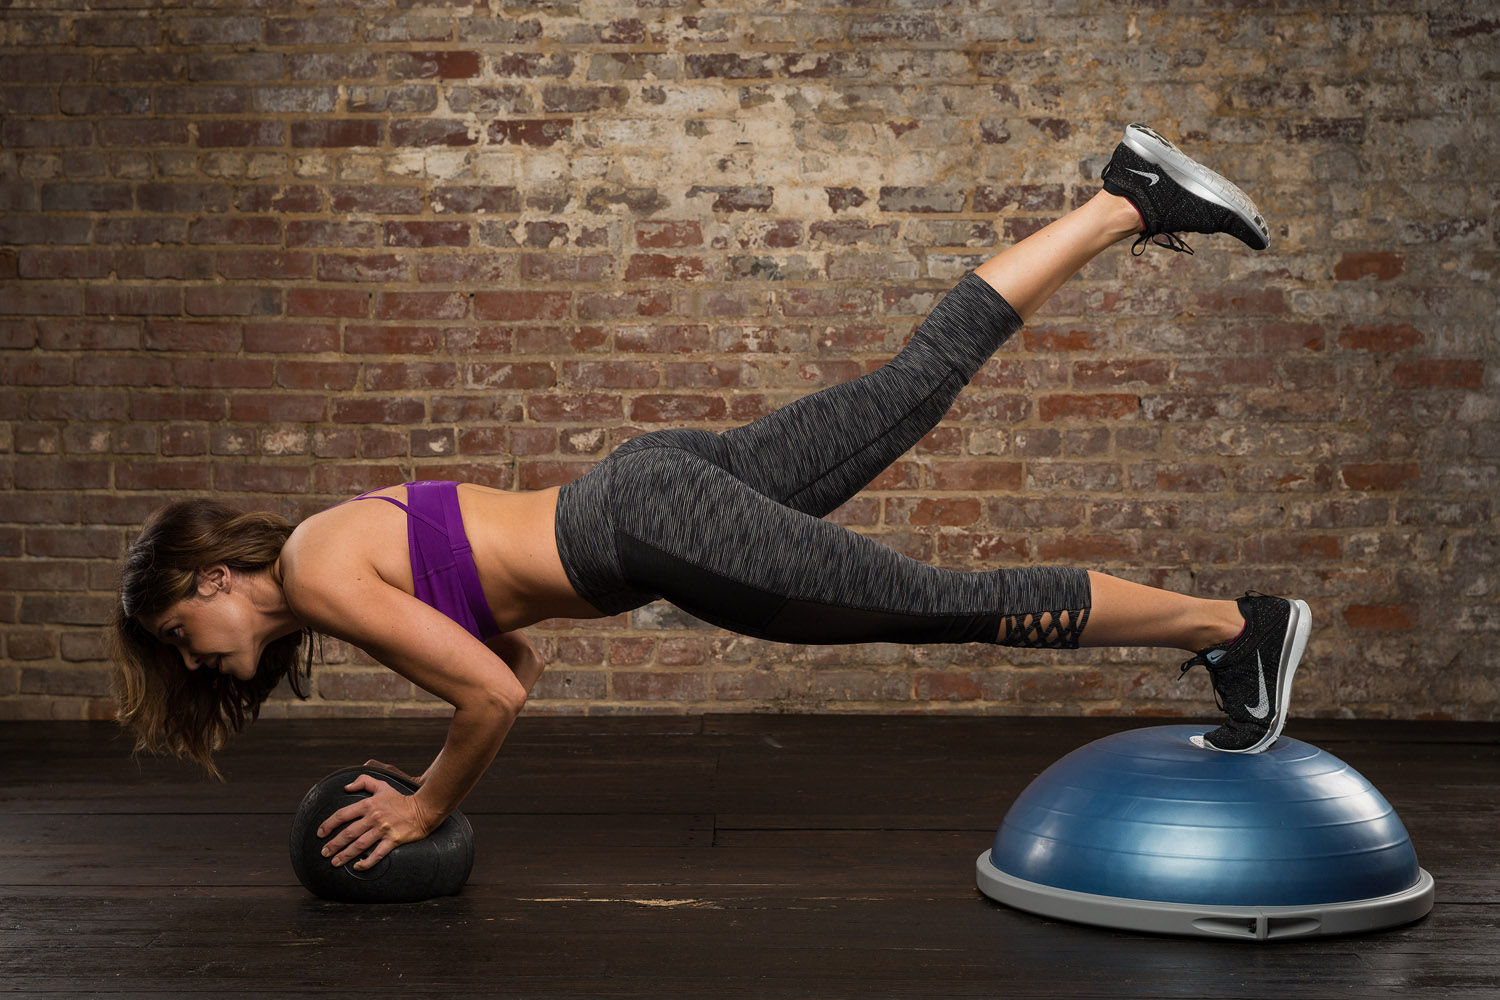 atlanta commercial photography editorial photographer - fitness trainer   103.jpg